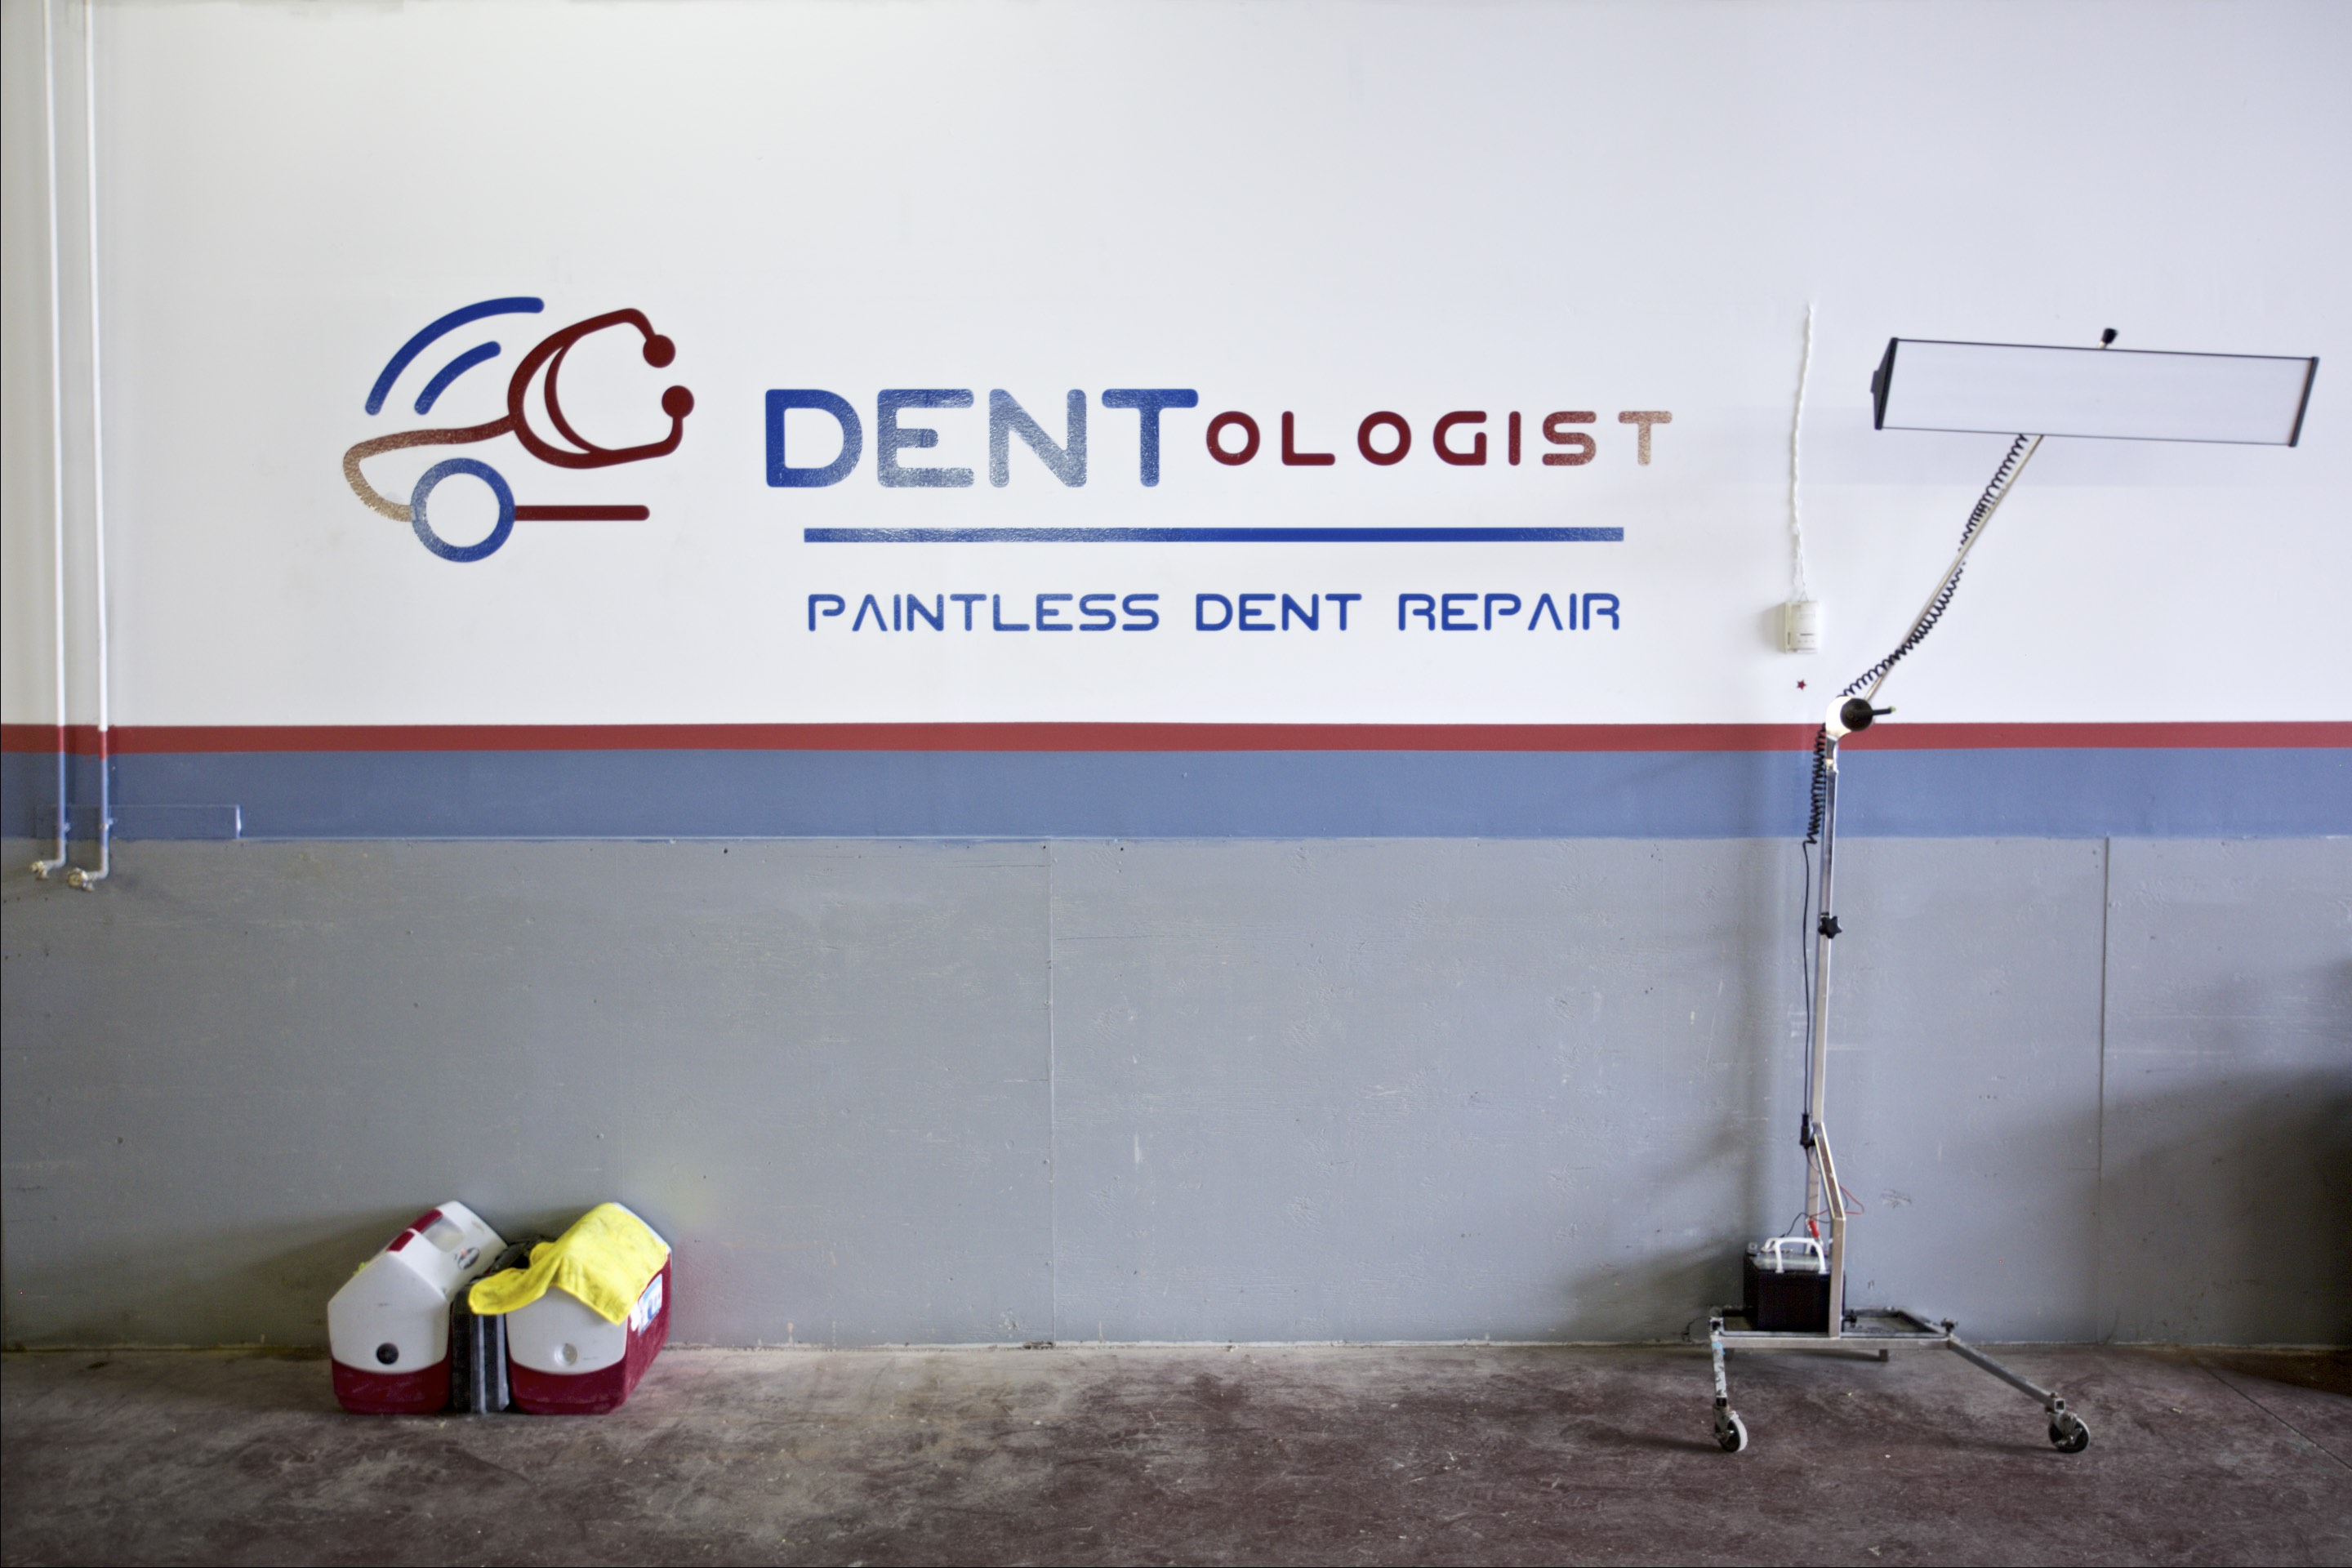 dentologist paintless dent repair